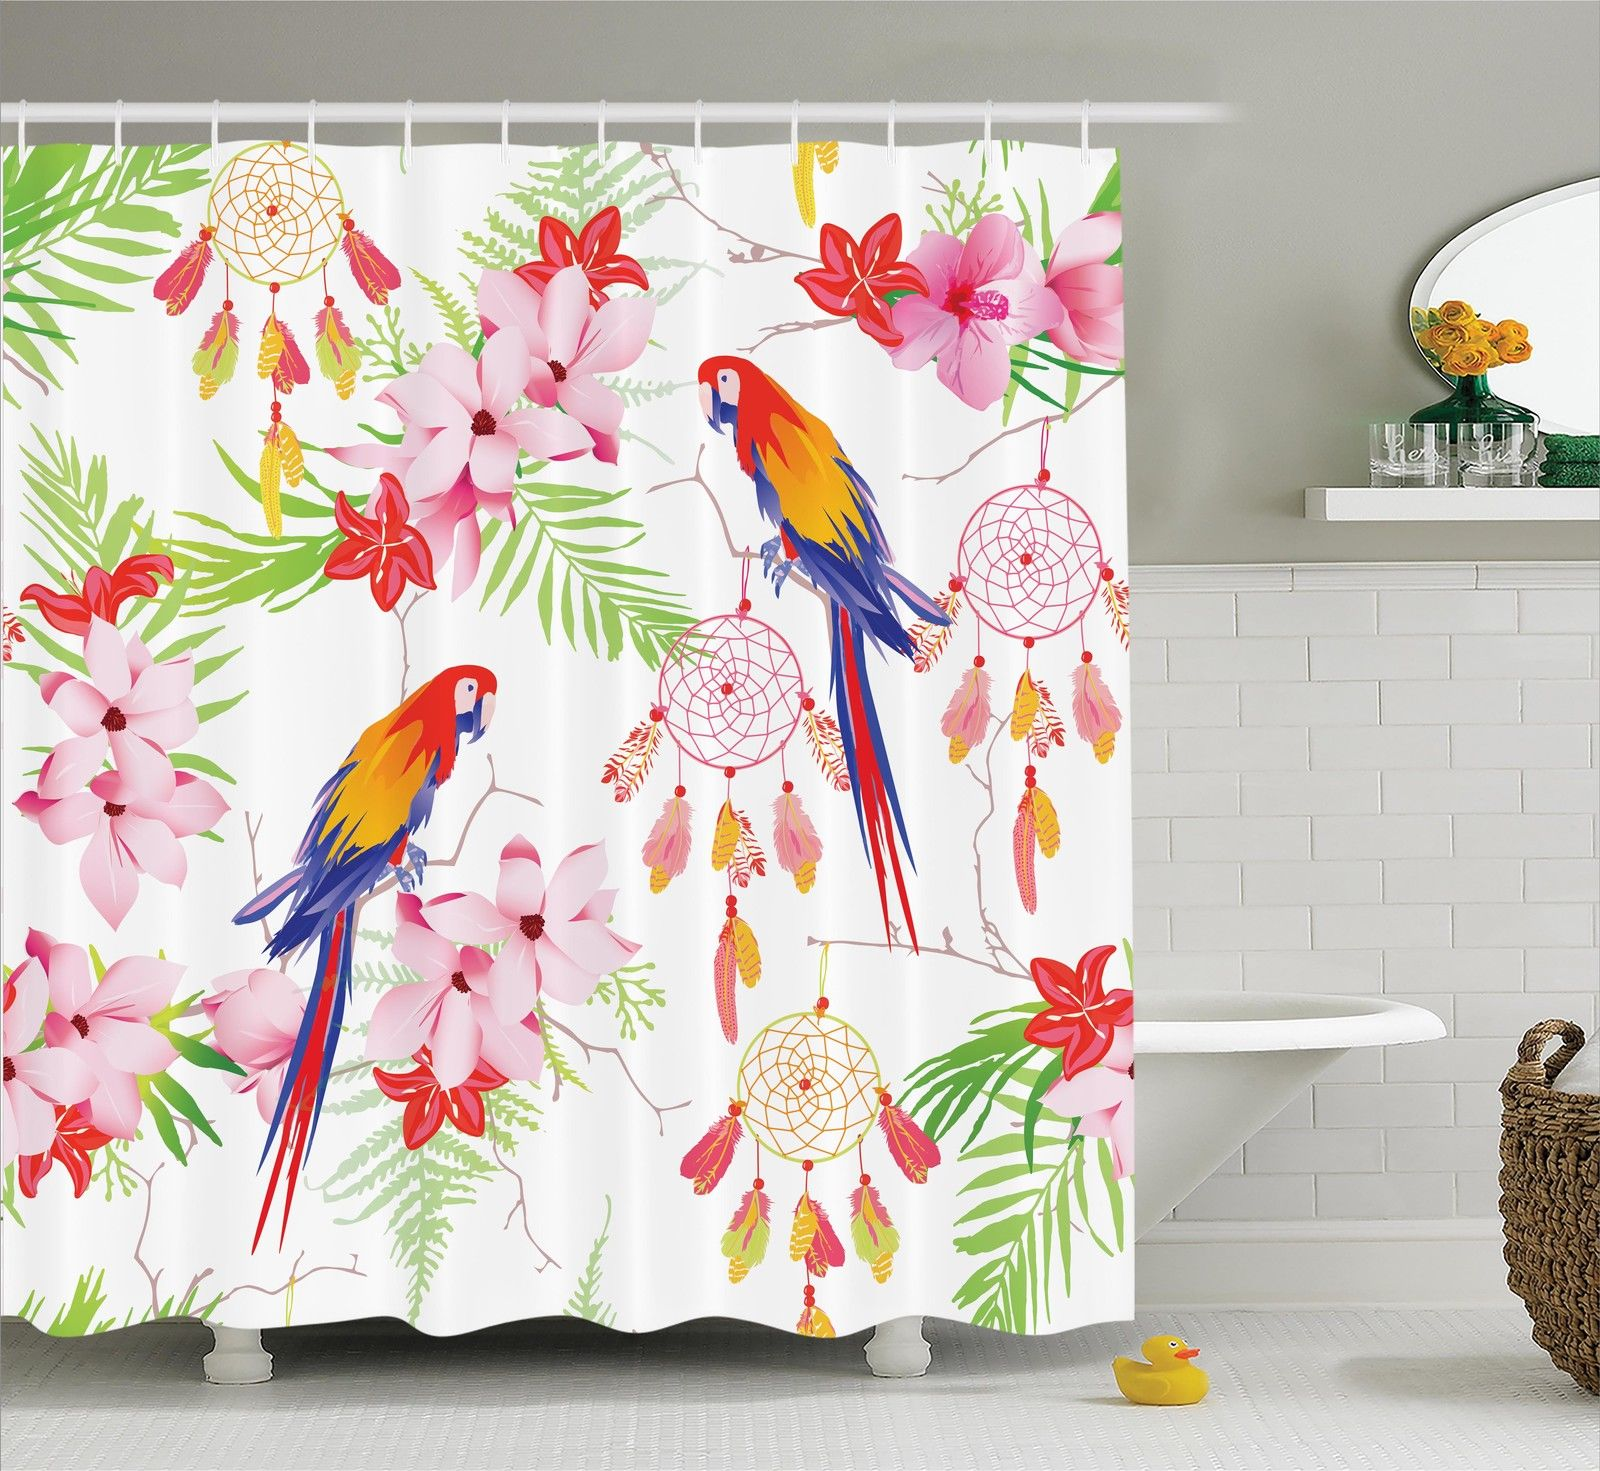 Parrots Decor  The Forest With Parrots And Native Indian ...